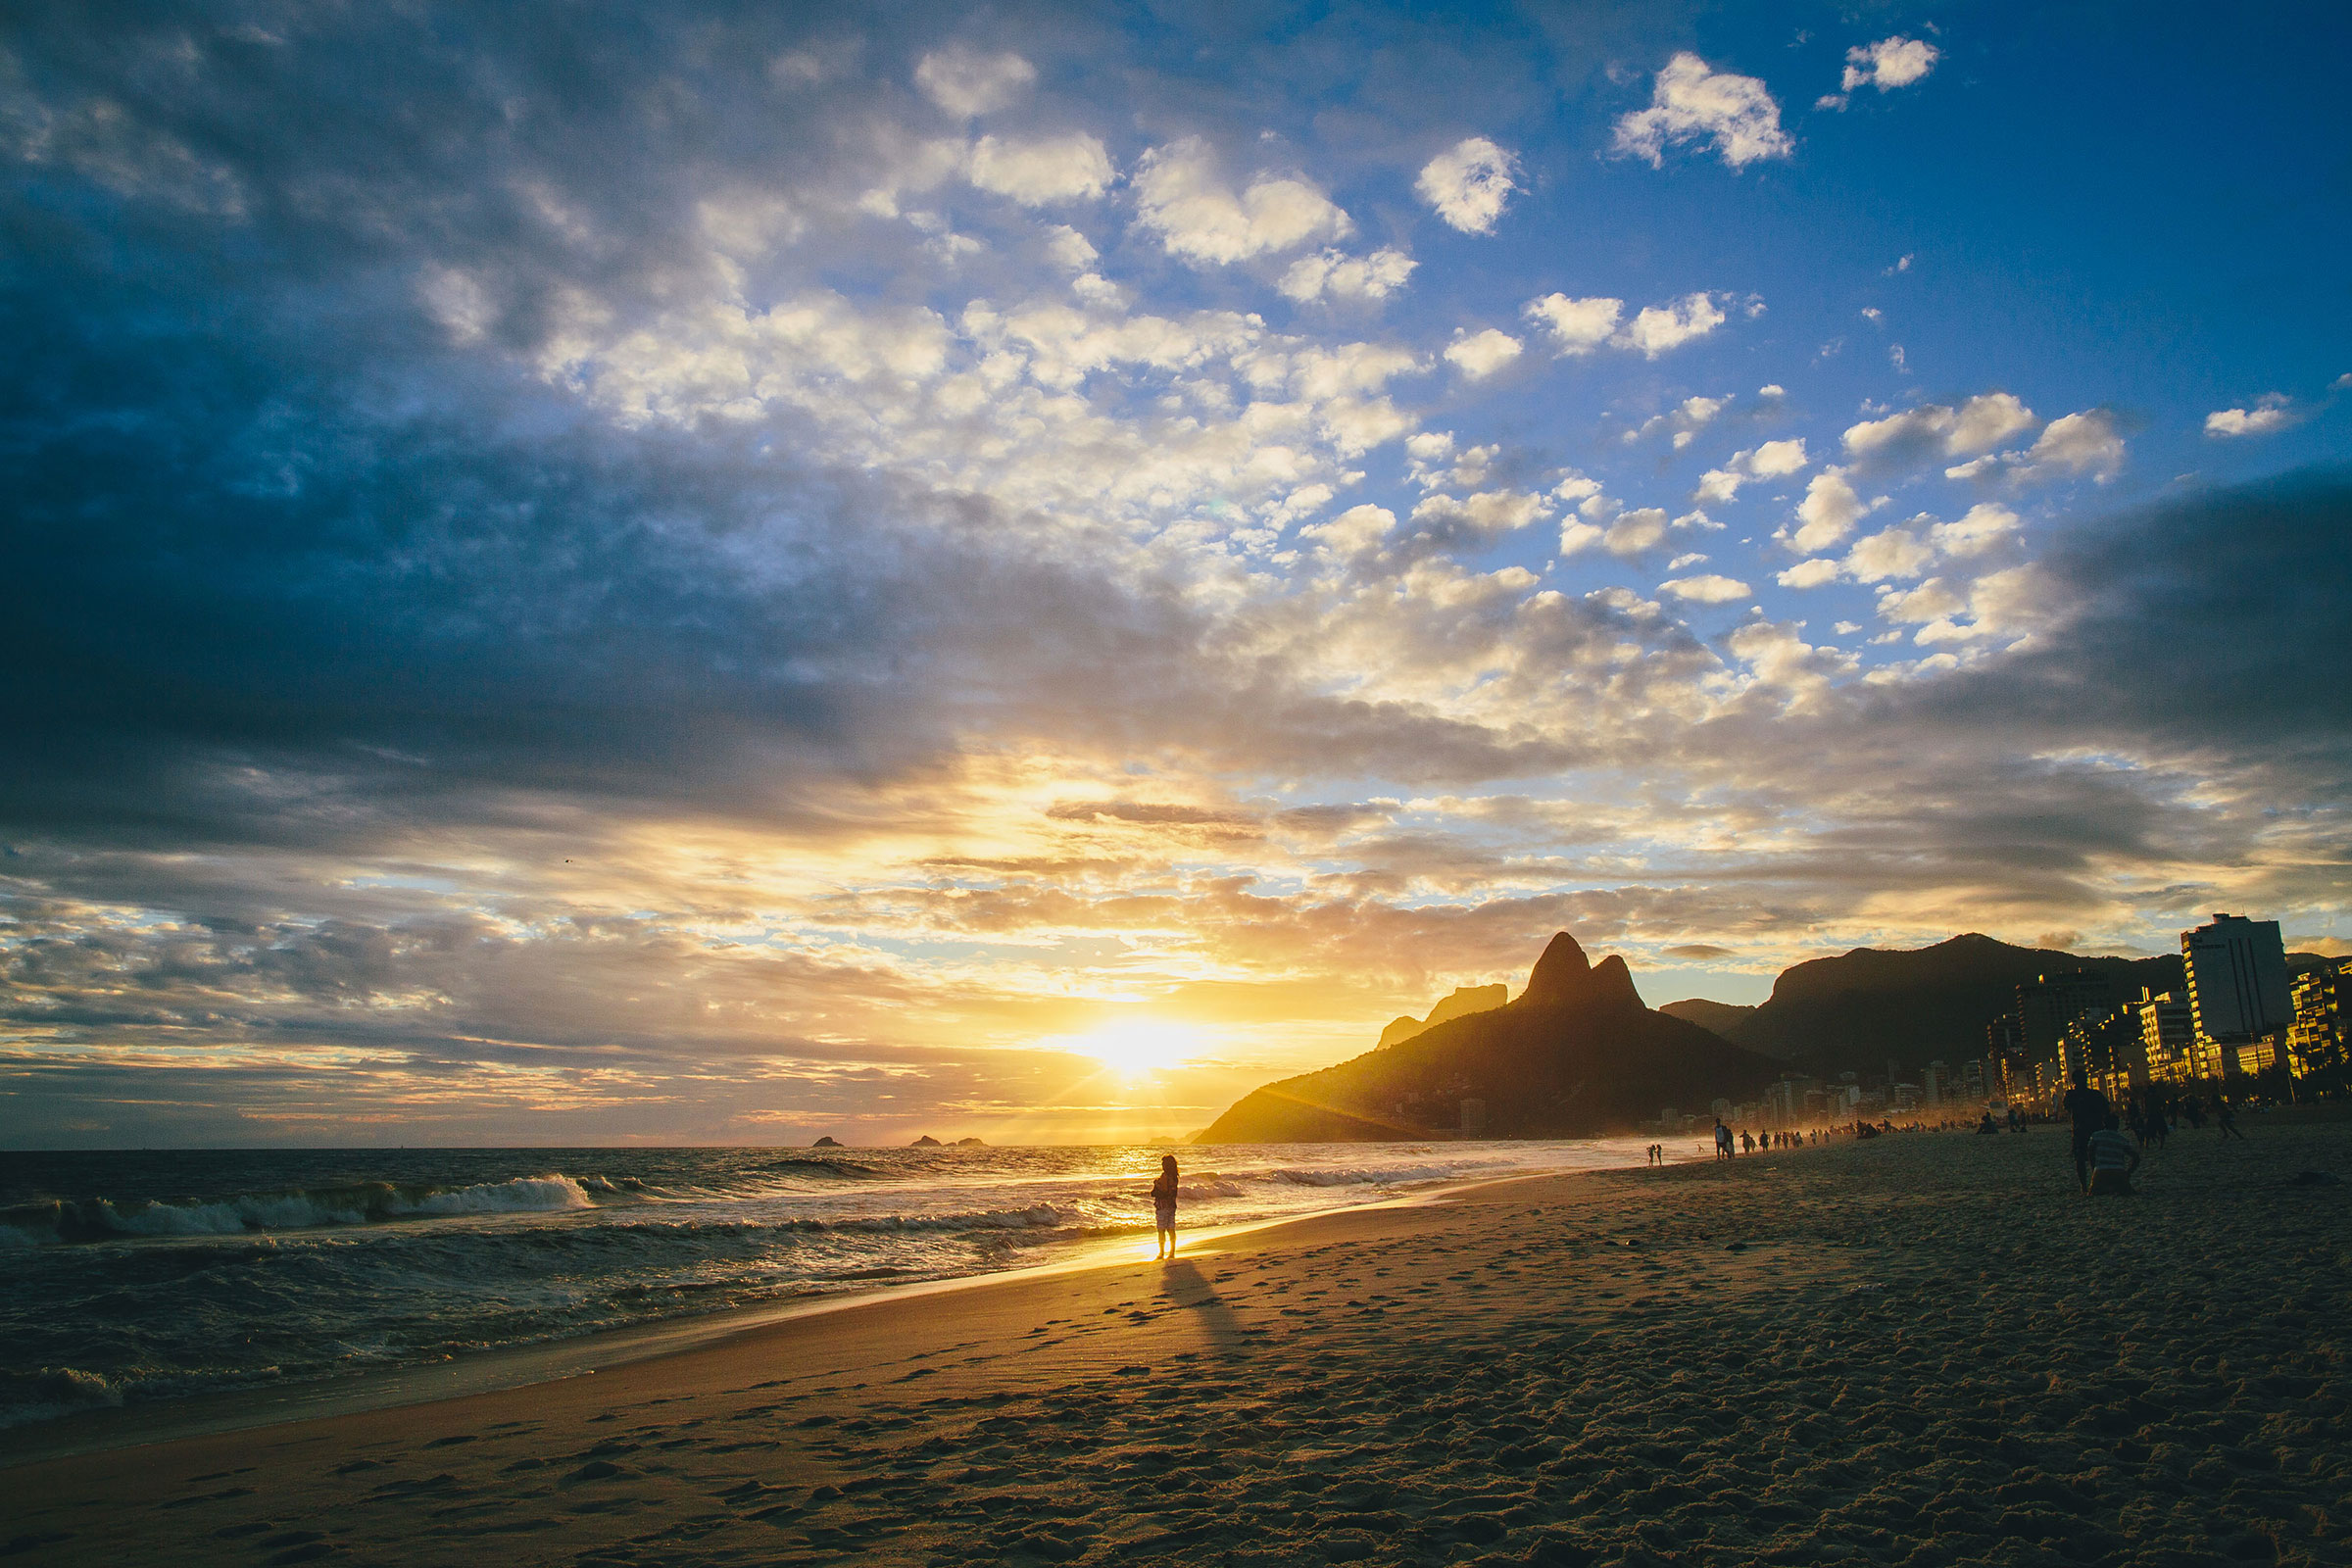 Lady sihouetted standing in the setting sun's light on Ipanema Beach, Rio De Janeiro